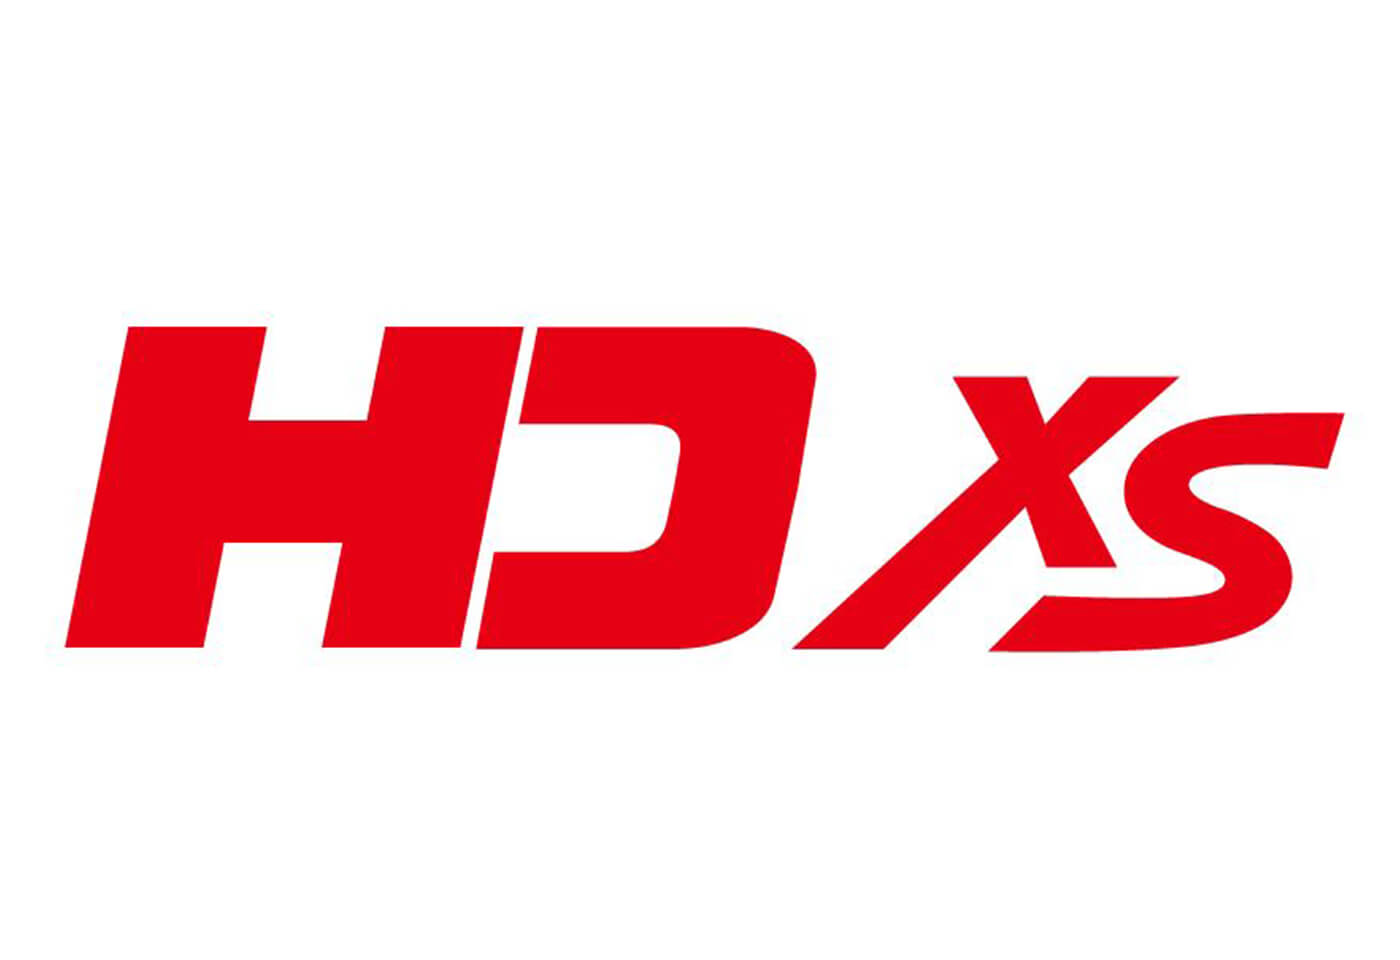 HD XS lens logo red